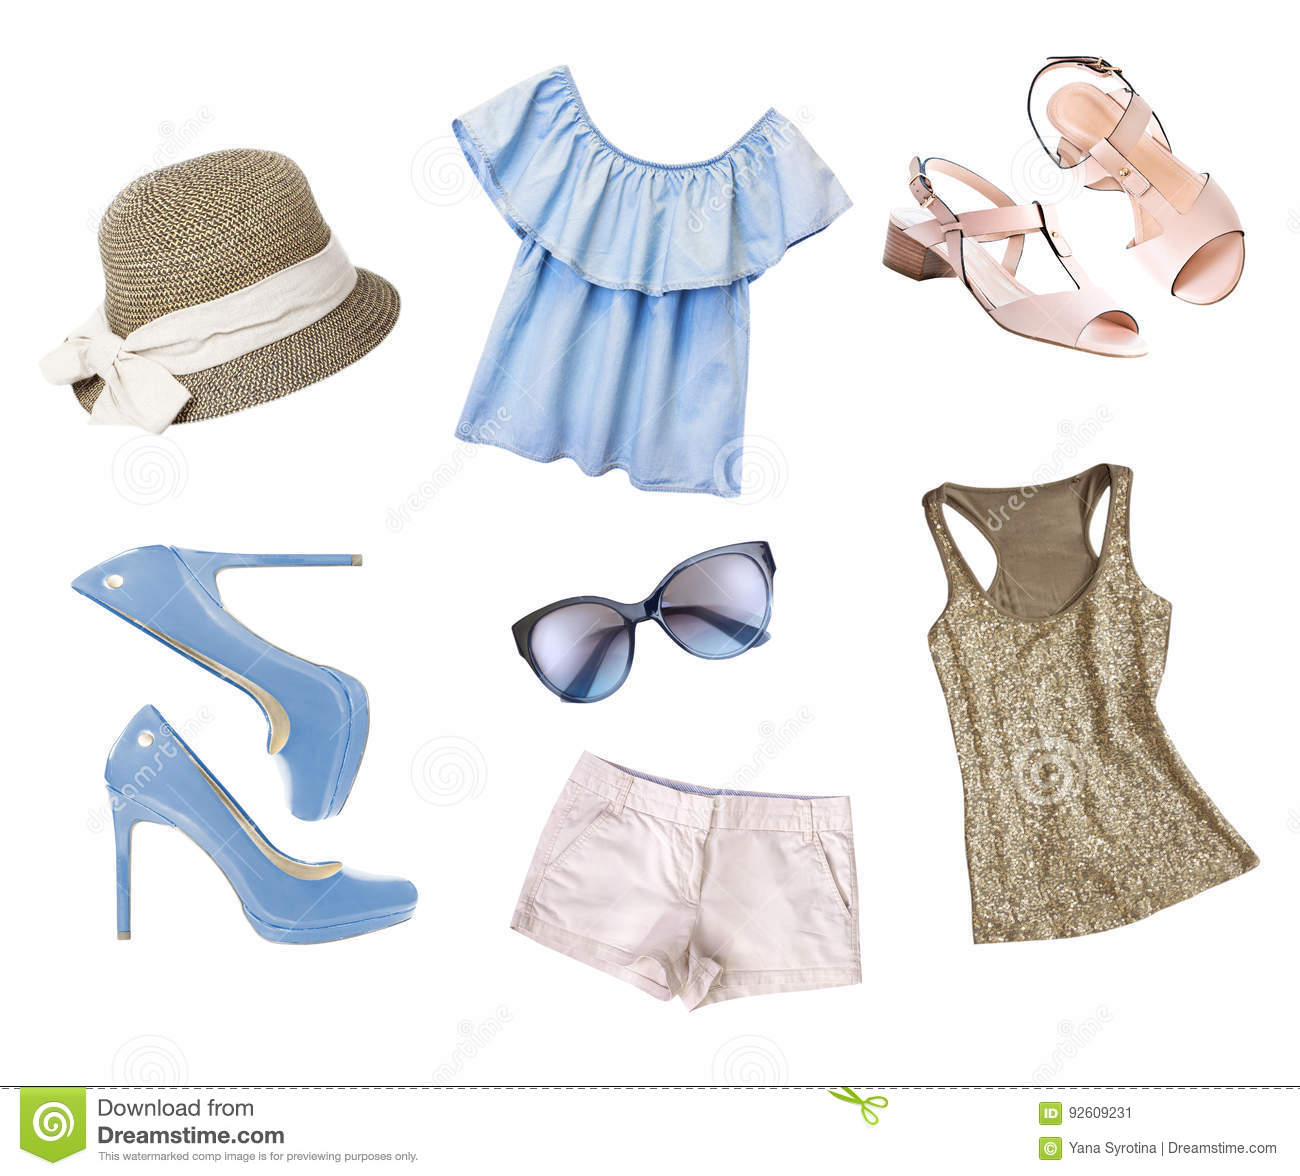 59e3bd24636 Female Women Clothes Collage Set Isolated. Stock Image - Image of ...